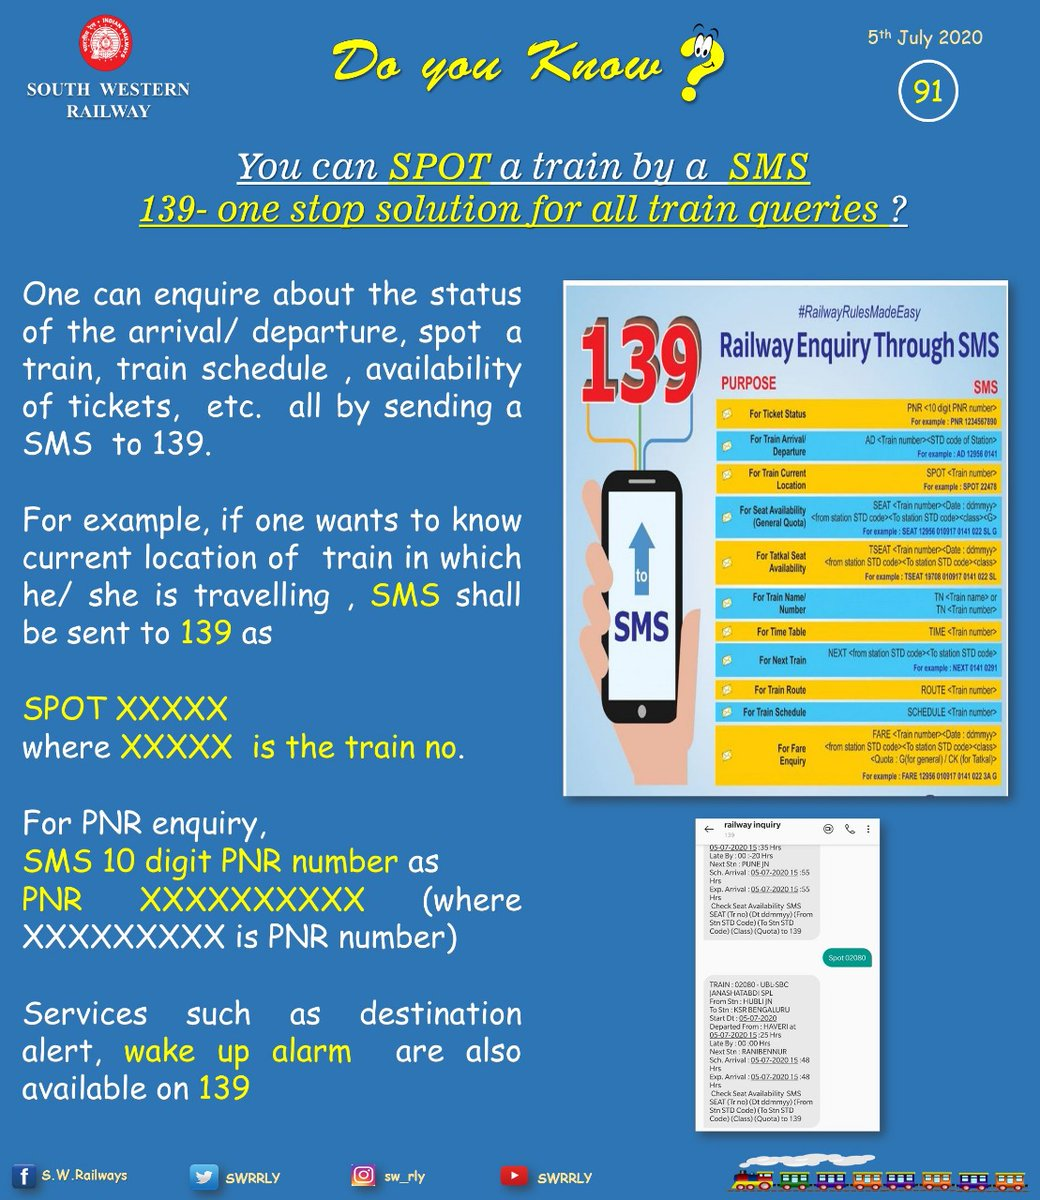 With advent of #technology, information is at our finger tips! Taking a cue #Railways also has developed #RailSampark-139 single #helpline number for all queries. Many a times we have  train related queries , answer for which is a SMS away now #India #DoYouKnow? #IncredibleIndiapic.twitter.com/uWRjGhiloG